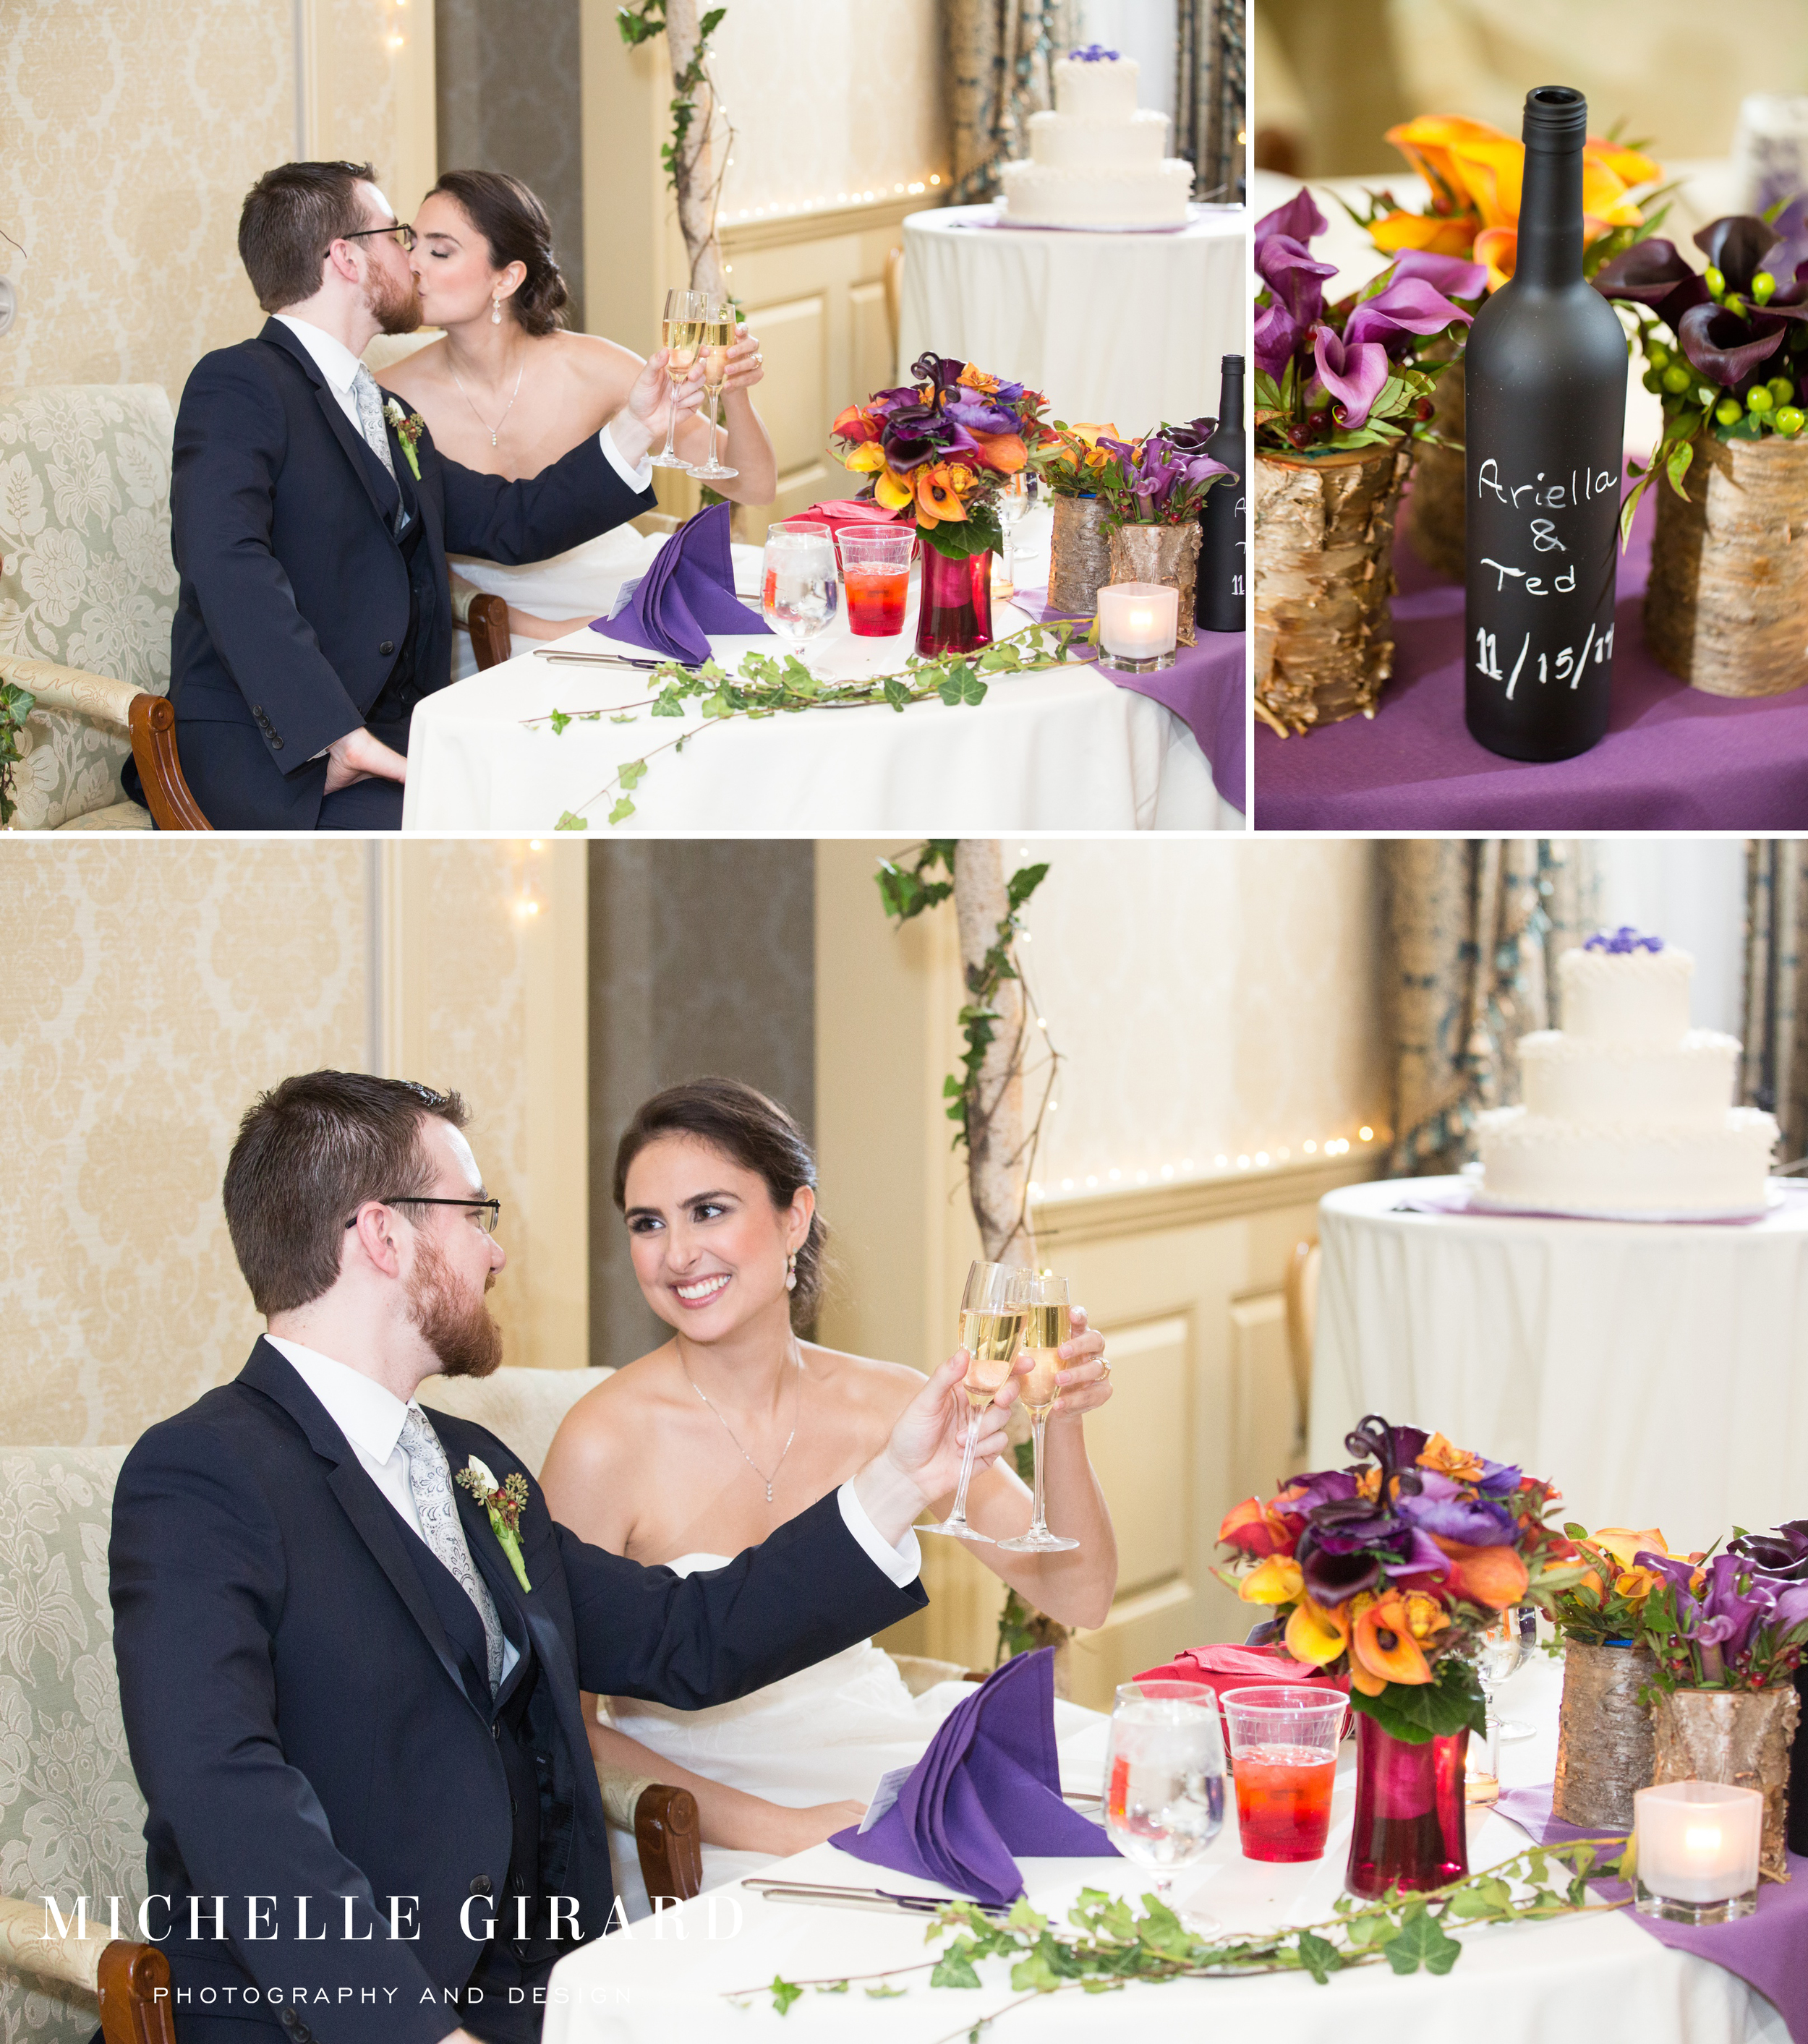 LordJefferyInnWedding_AmherstMa_MichelleGirardPhotography45.jpg